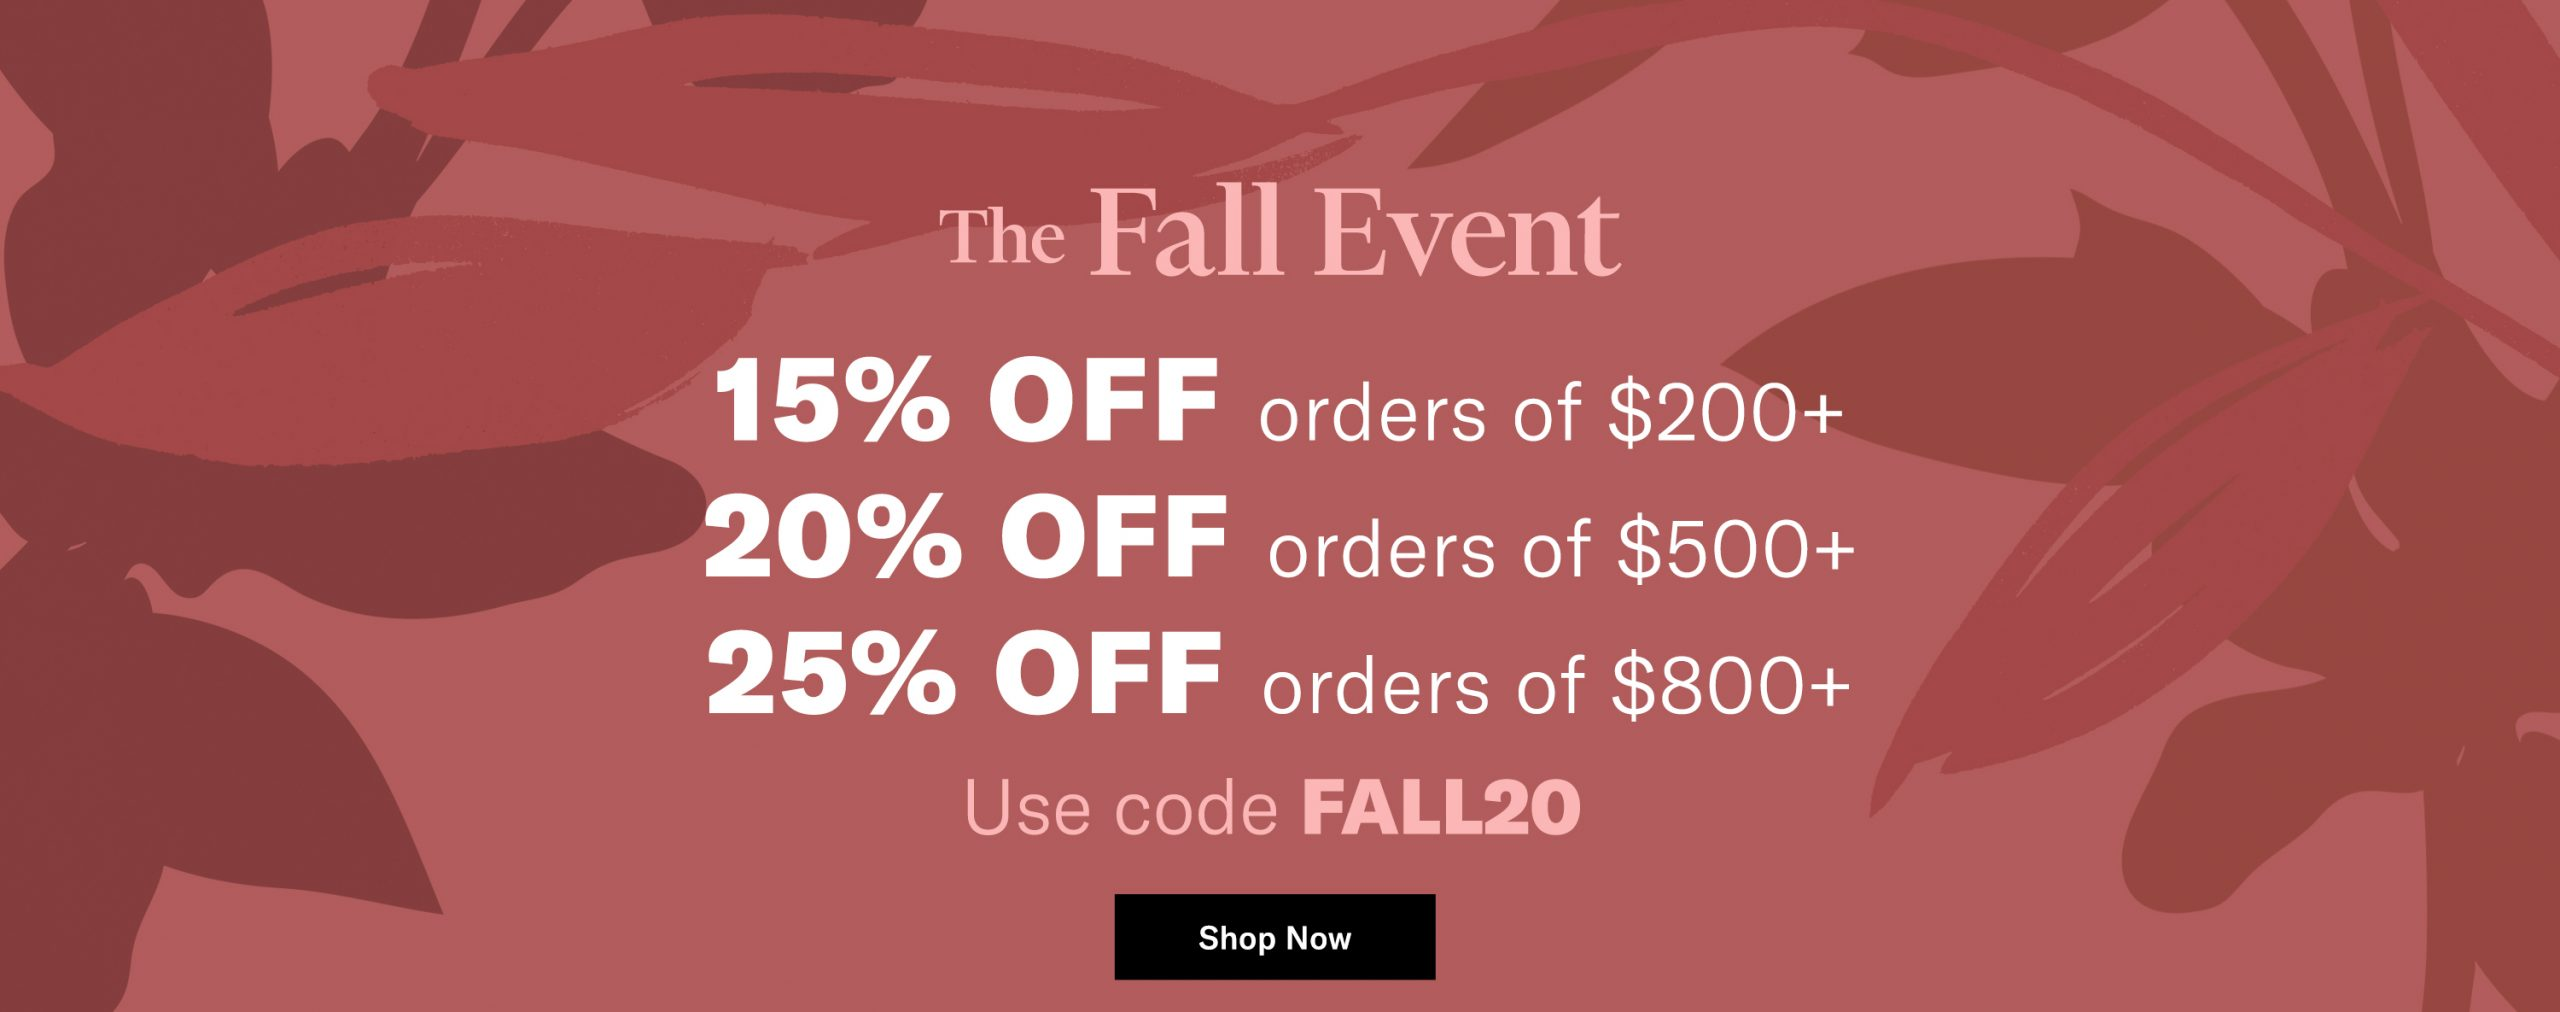 Shopbop fall sale 2020